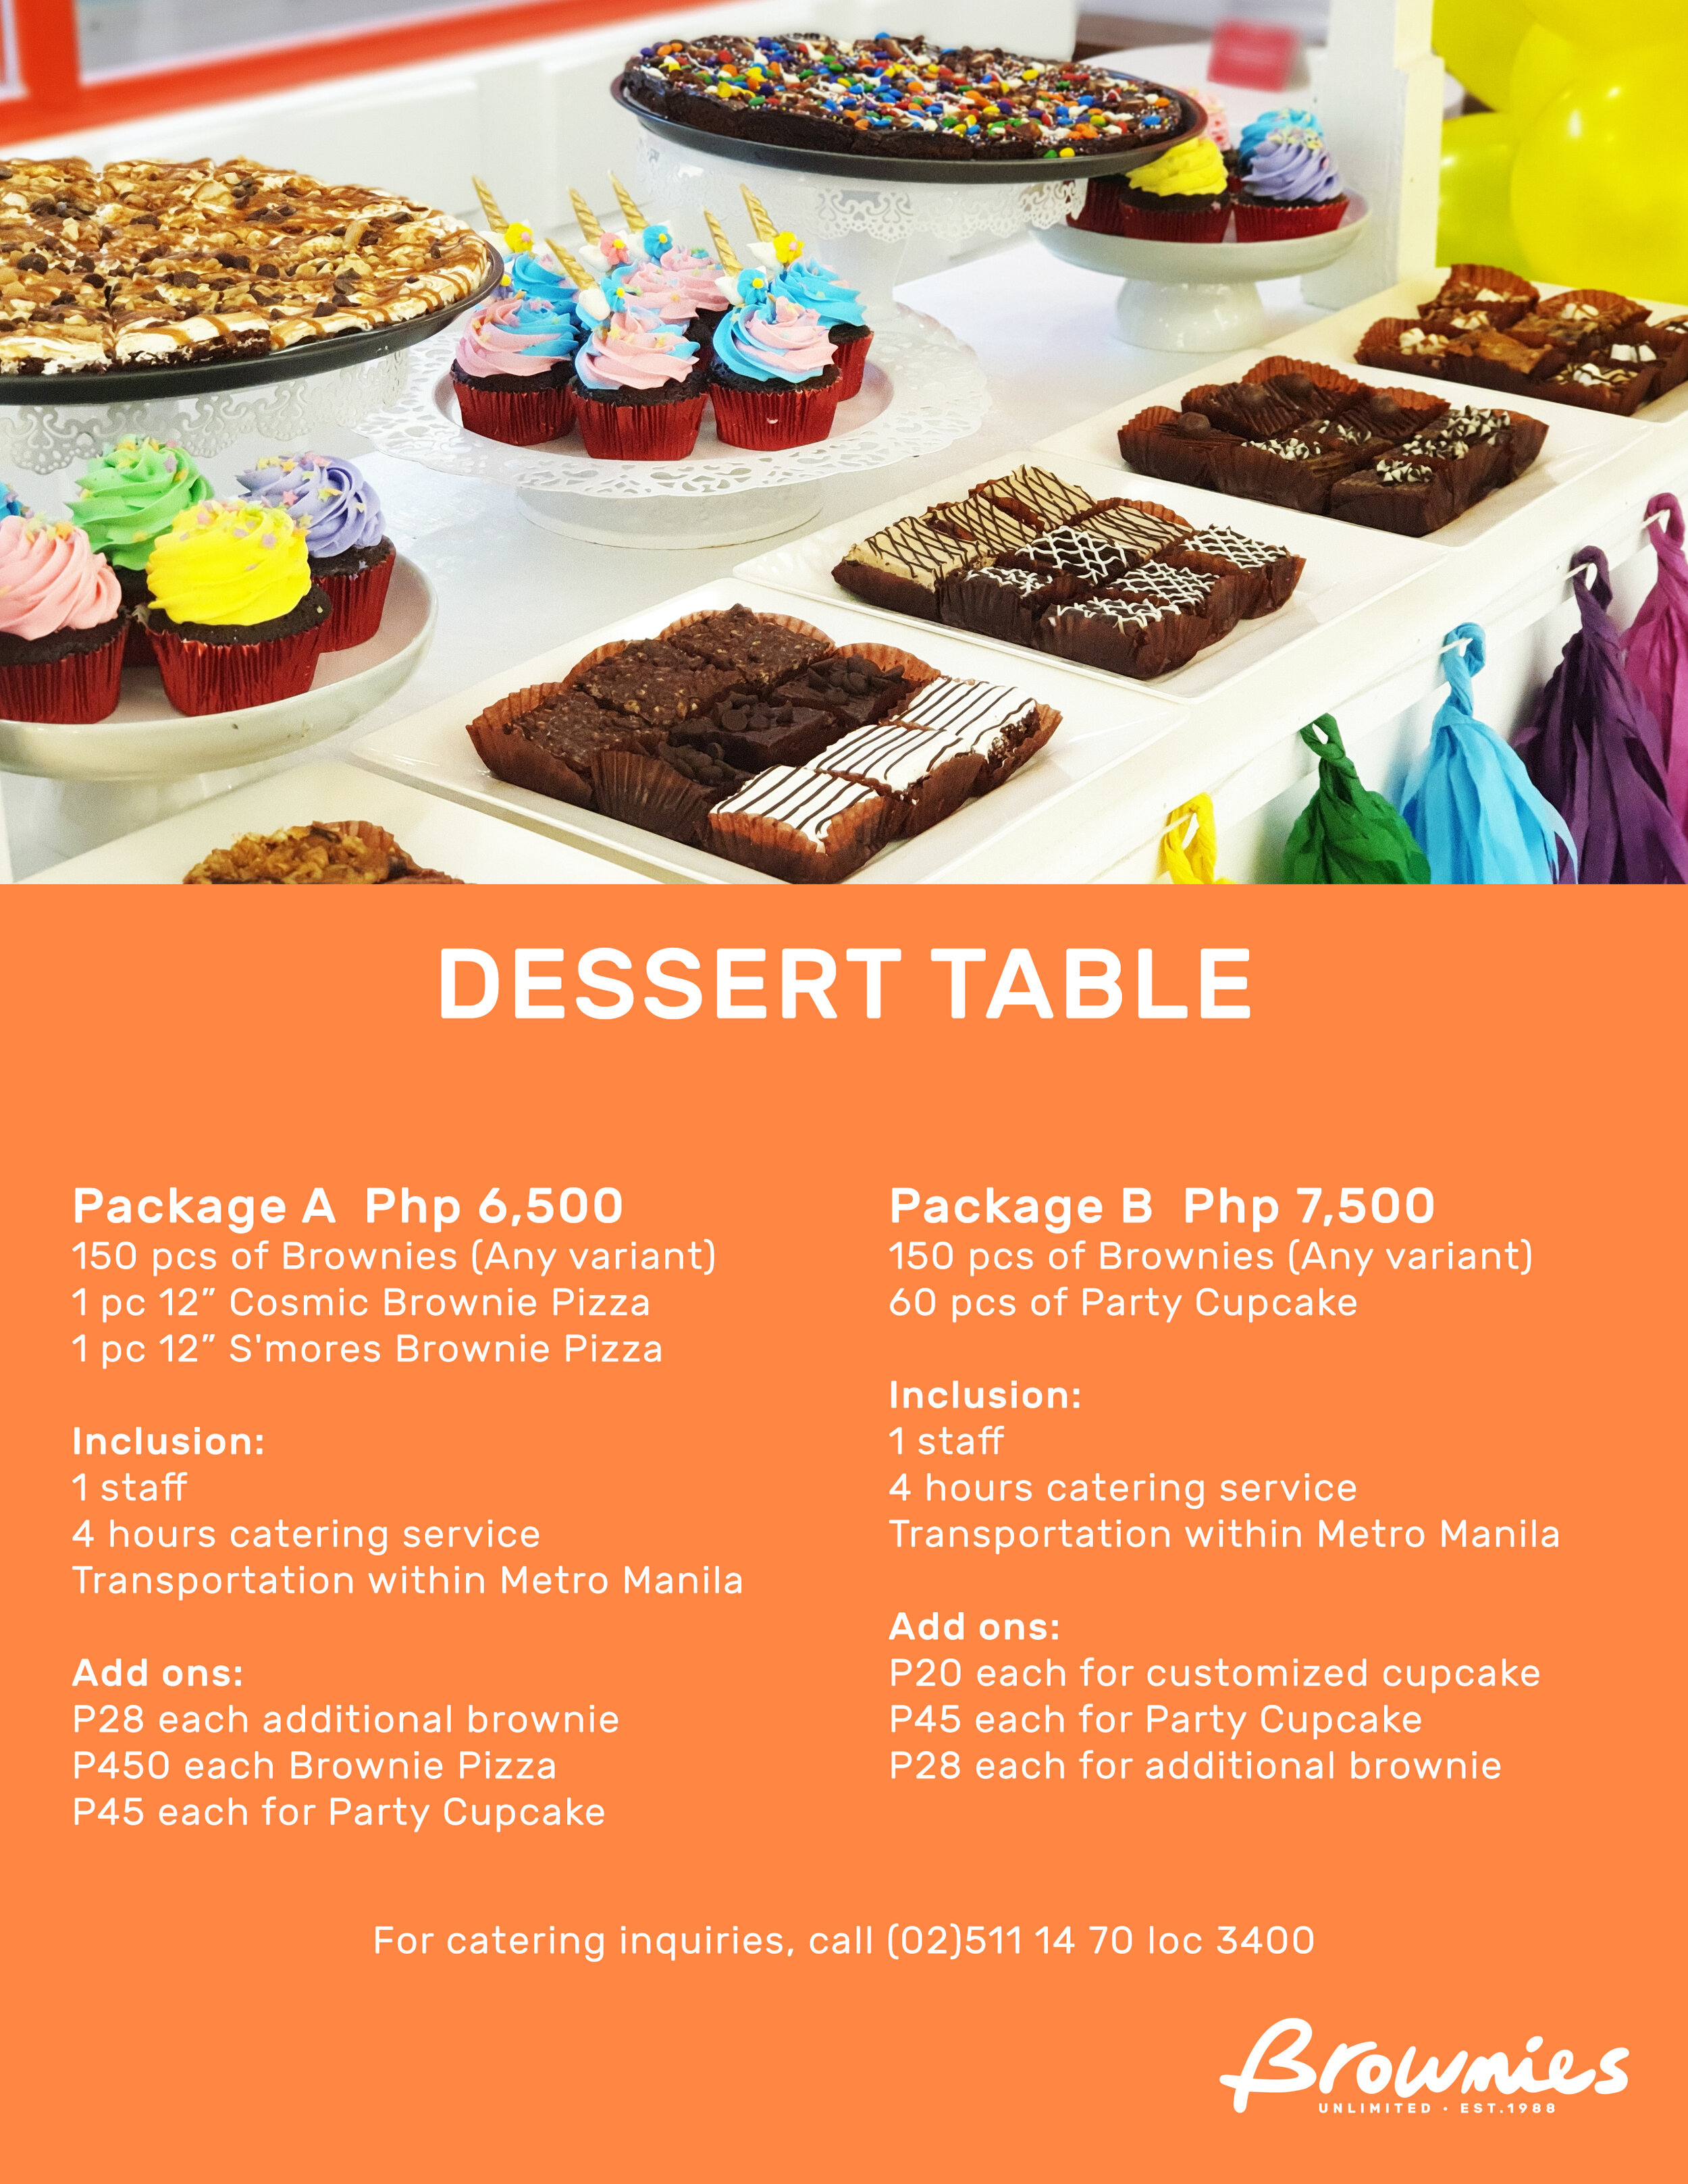 Dessert Table package.jpg